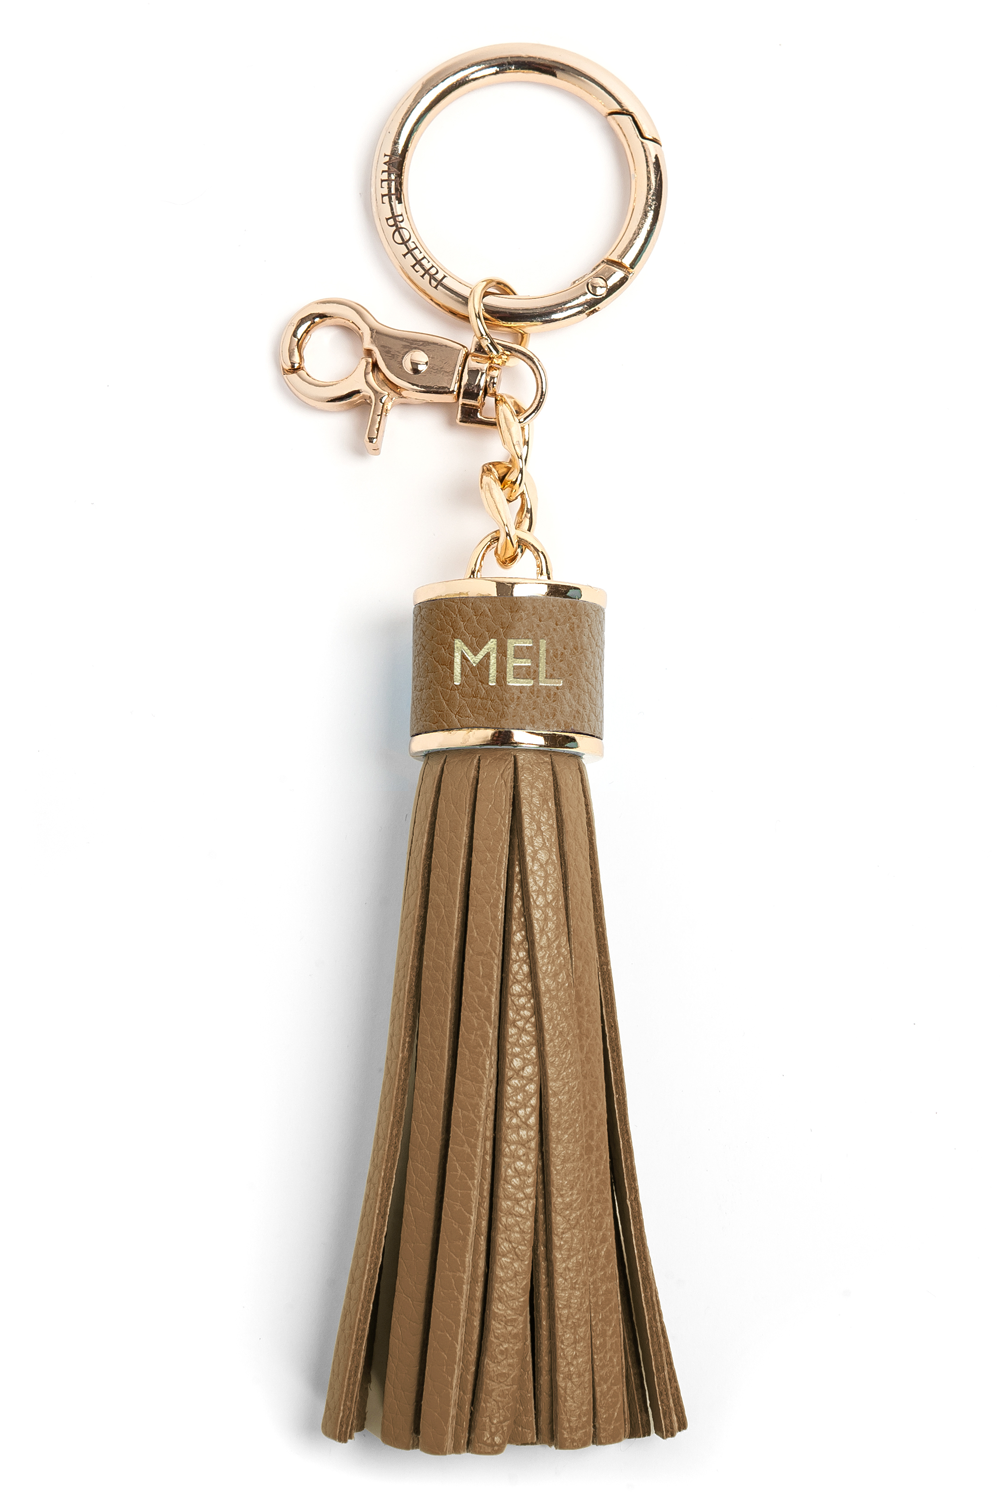 The Mel Boteri Pebbled-Leather Tassel Charm | Biscotti Leather With Gold Hardware | Mel Boteri Gift Ideas